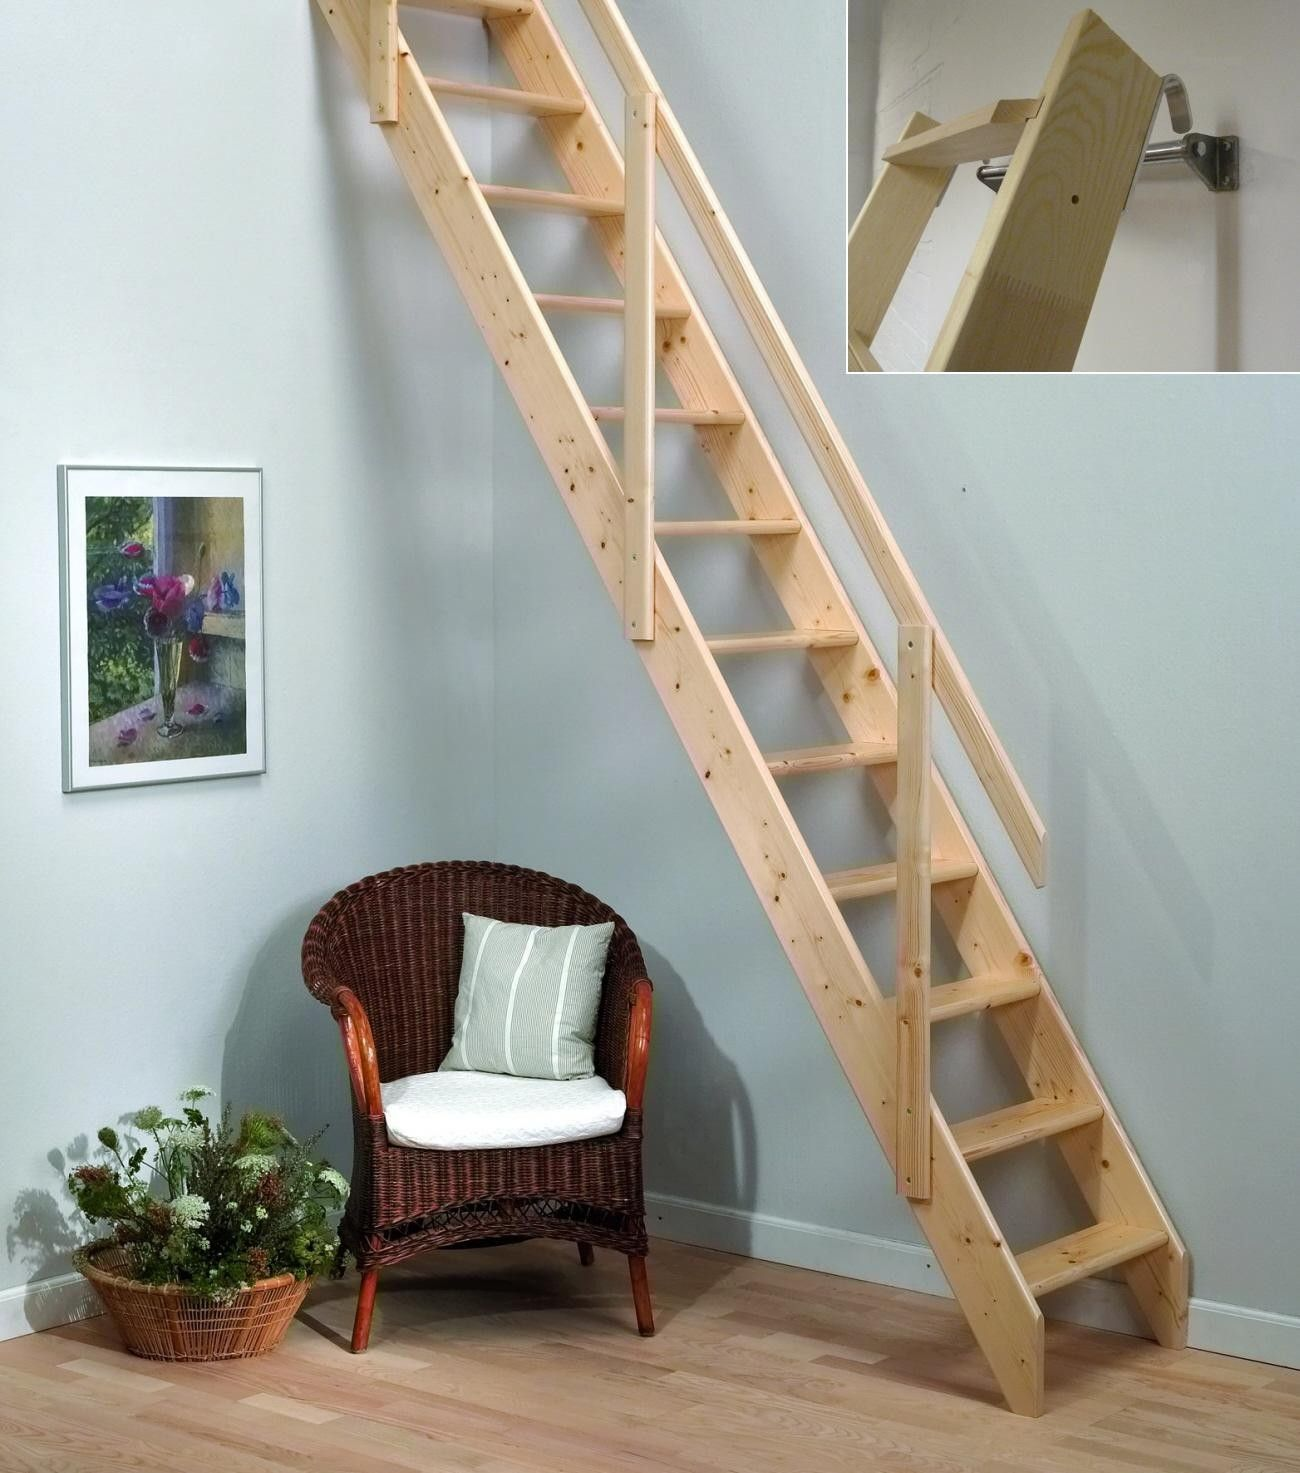 Loft access stairs and ladders san francisco by royo architects - Dolle Madrid Wooden Space Saving Staircase Kit Loft Stair The Madrid Makes For An Ideal Access Solution Where Space Is Limited